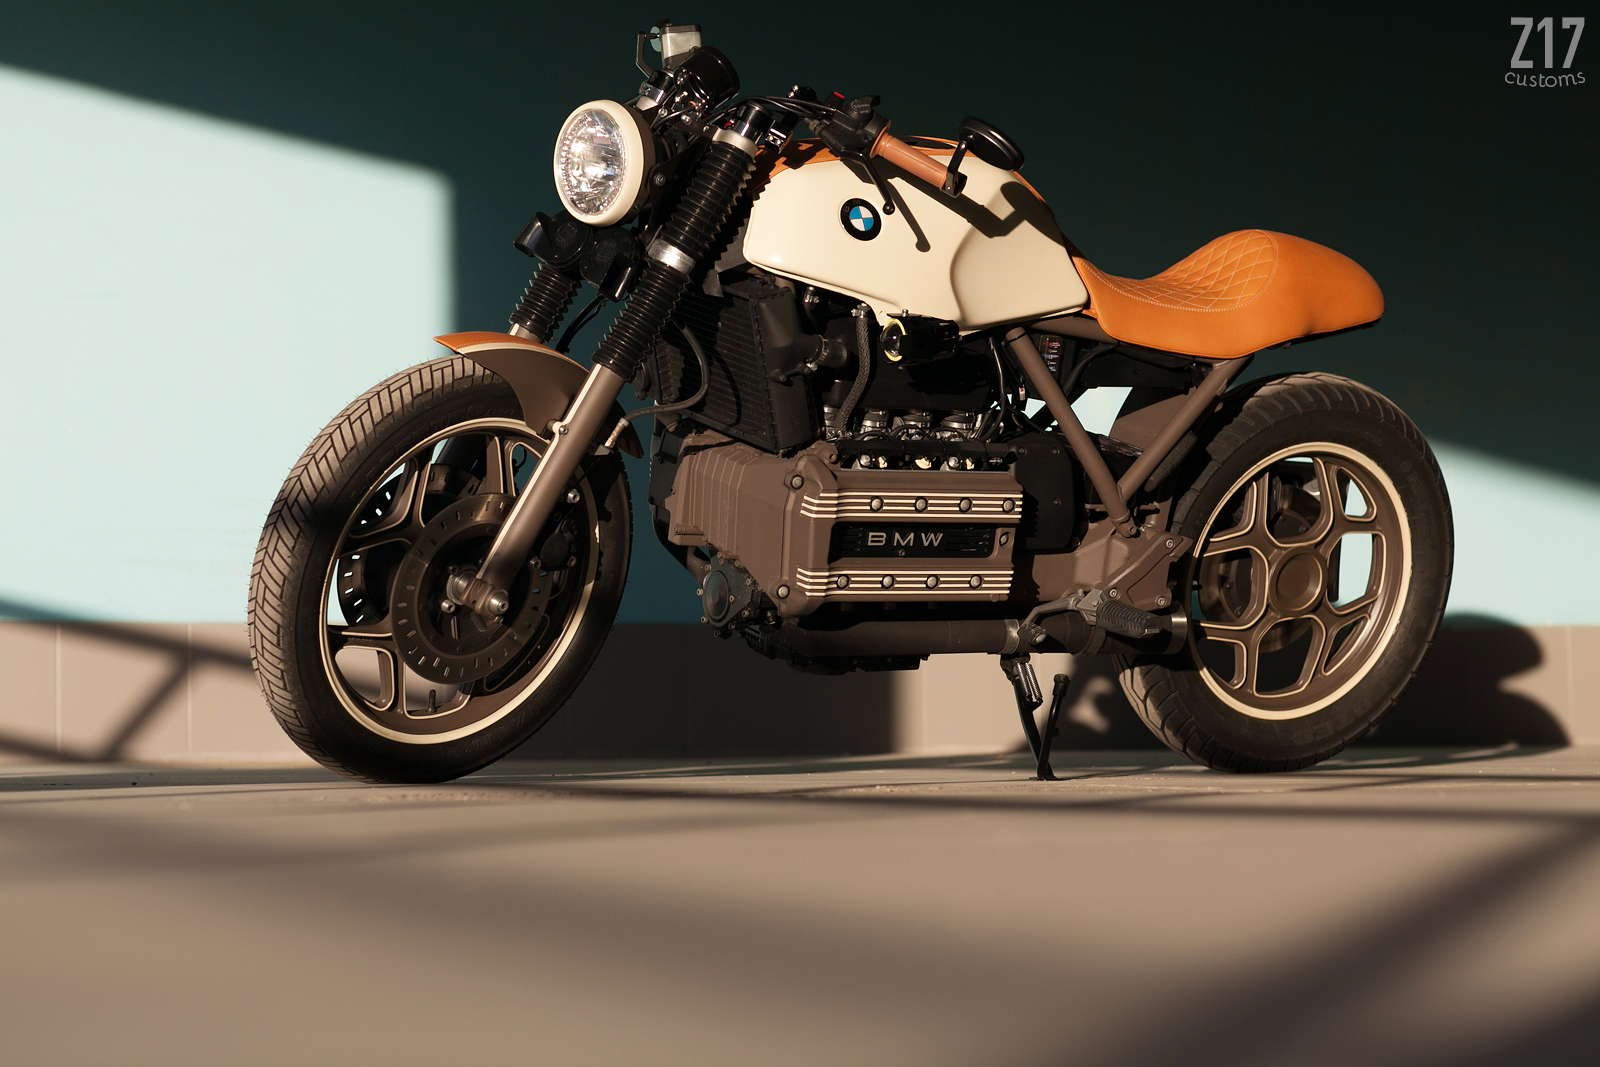 bmw k100 cafe racer by z17 customs bikebound. Black Bedroom Furniture Sets. Home Design Ideas